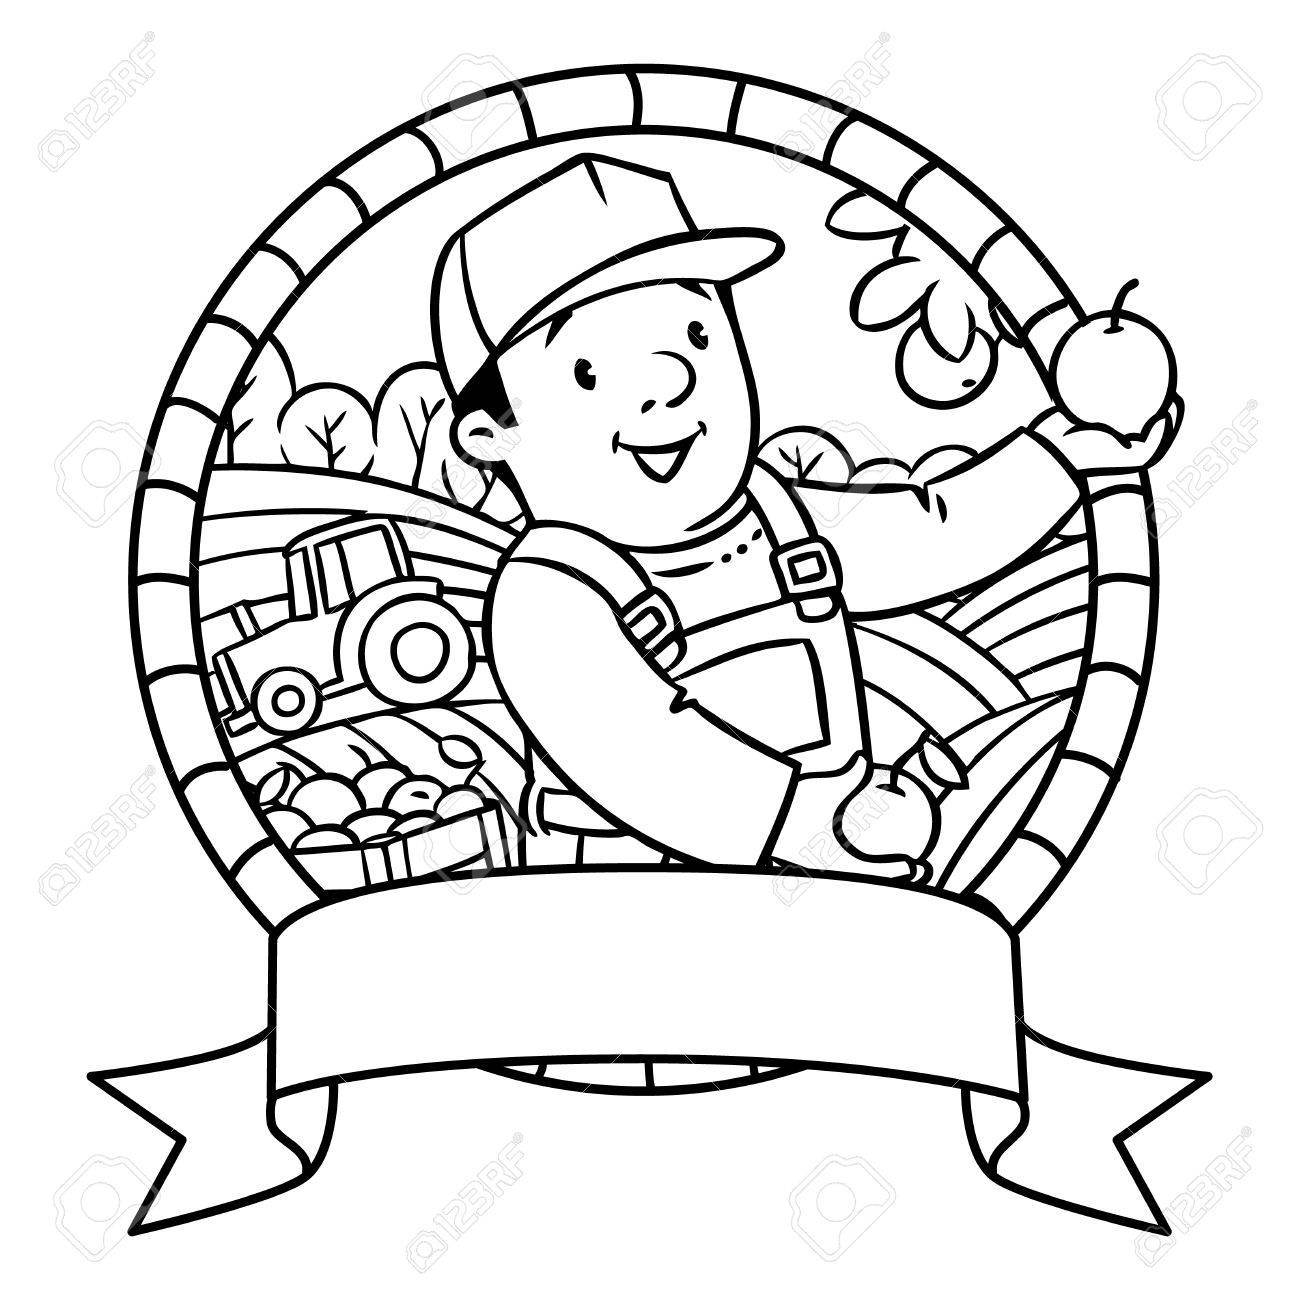 Coloring Book Or Emblem Of Funny Farmer Or Gardener In Overall ...